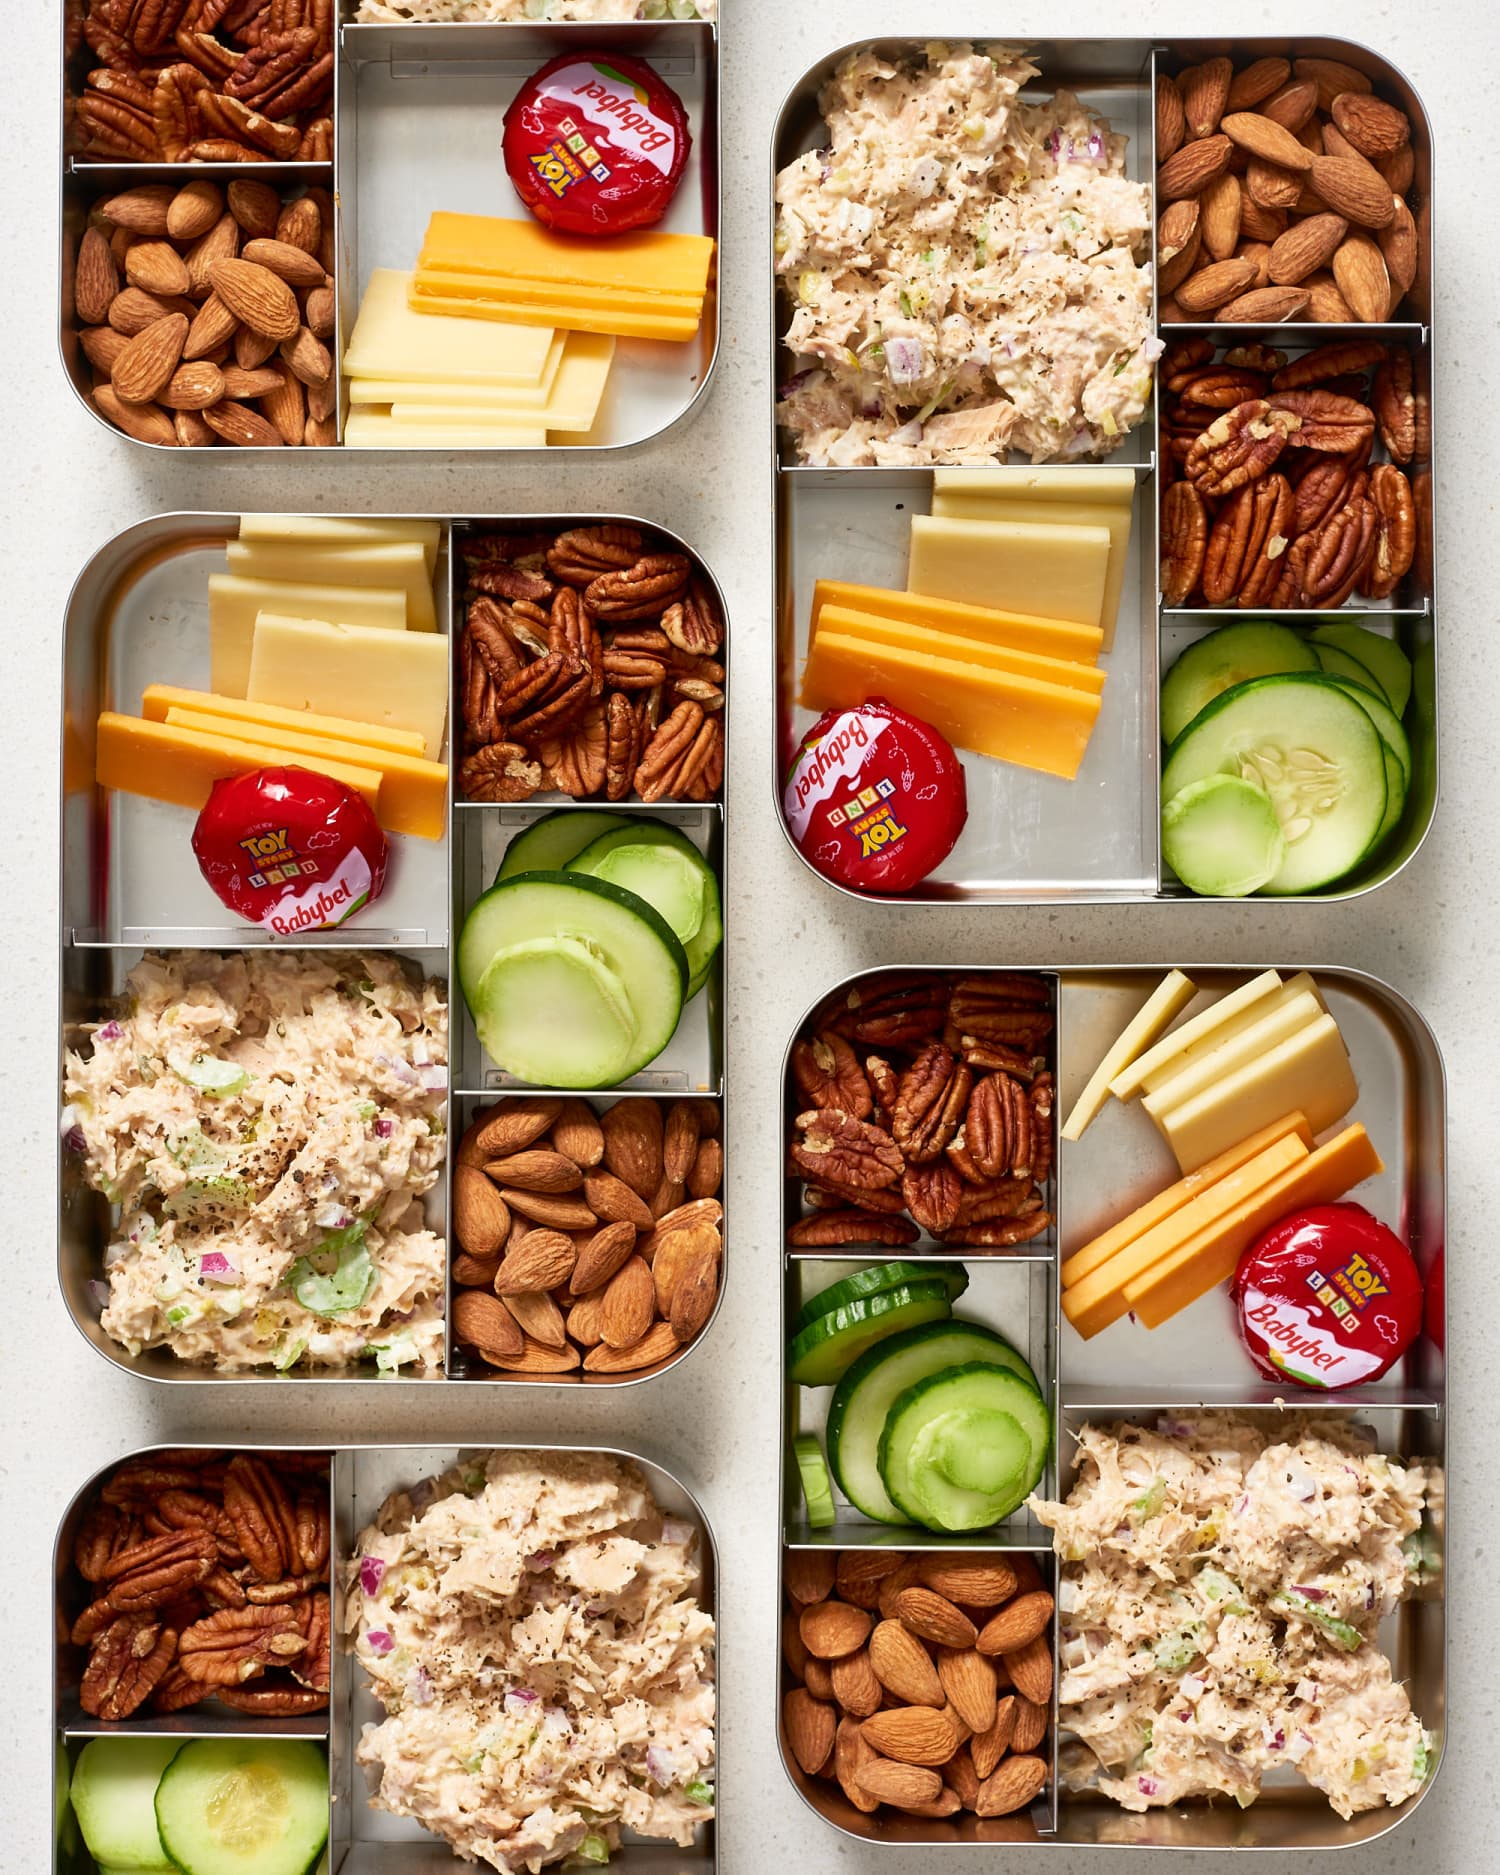 Our 20 All-Time Most Brilliant Tips for Packing Better Lunches